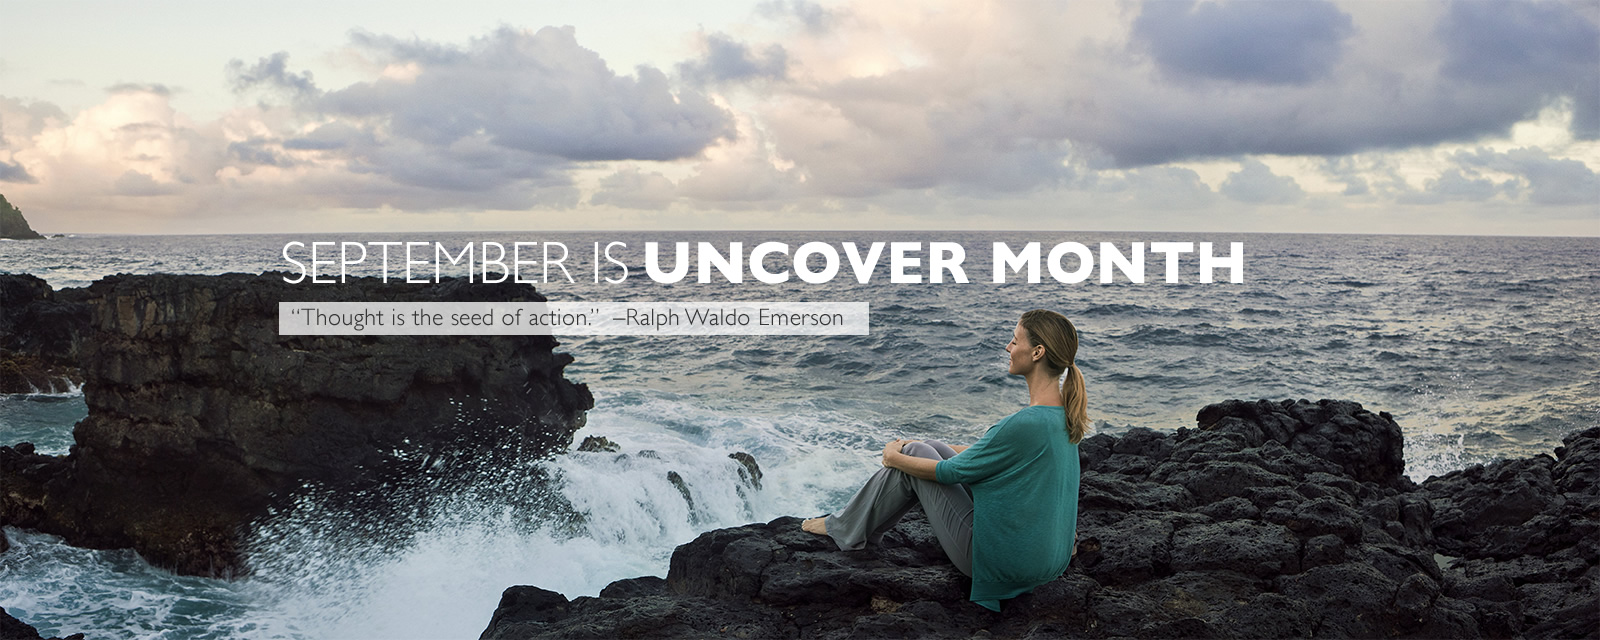 September is Uncover month at Travaasa